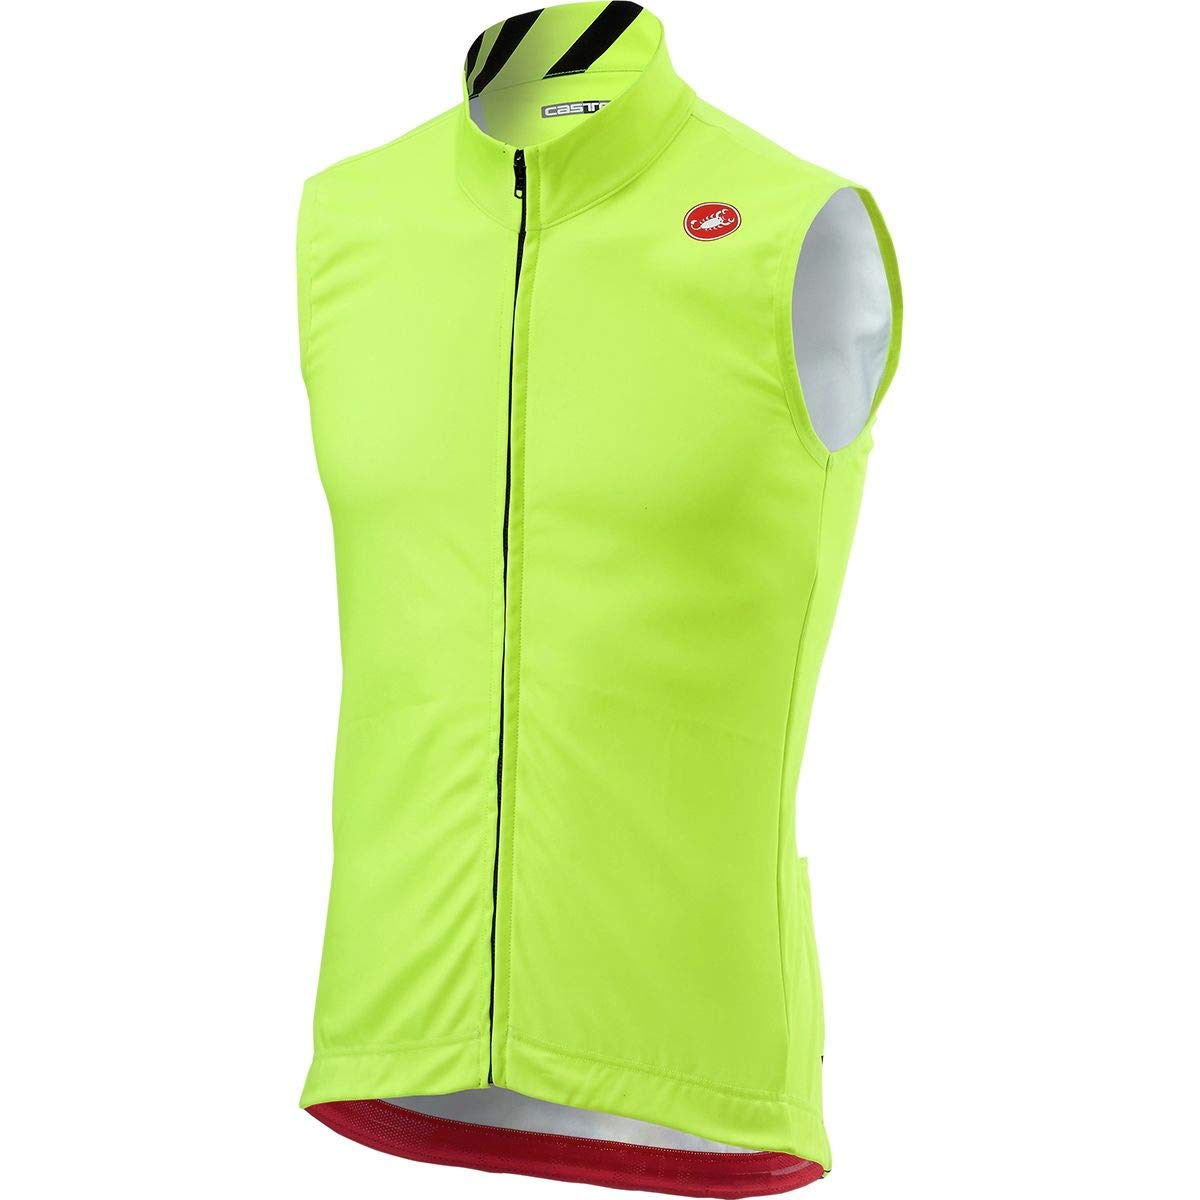 Castelli Thermal Pro Vest - Men's Yellow Fluo, XL by Castelli